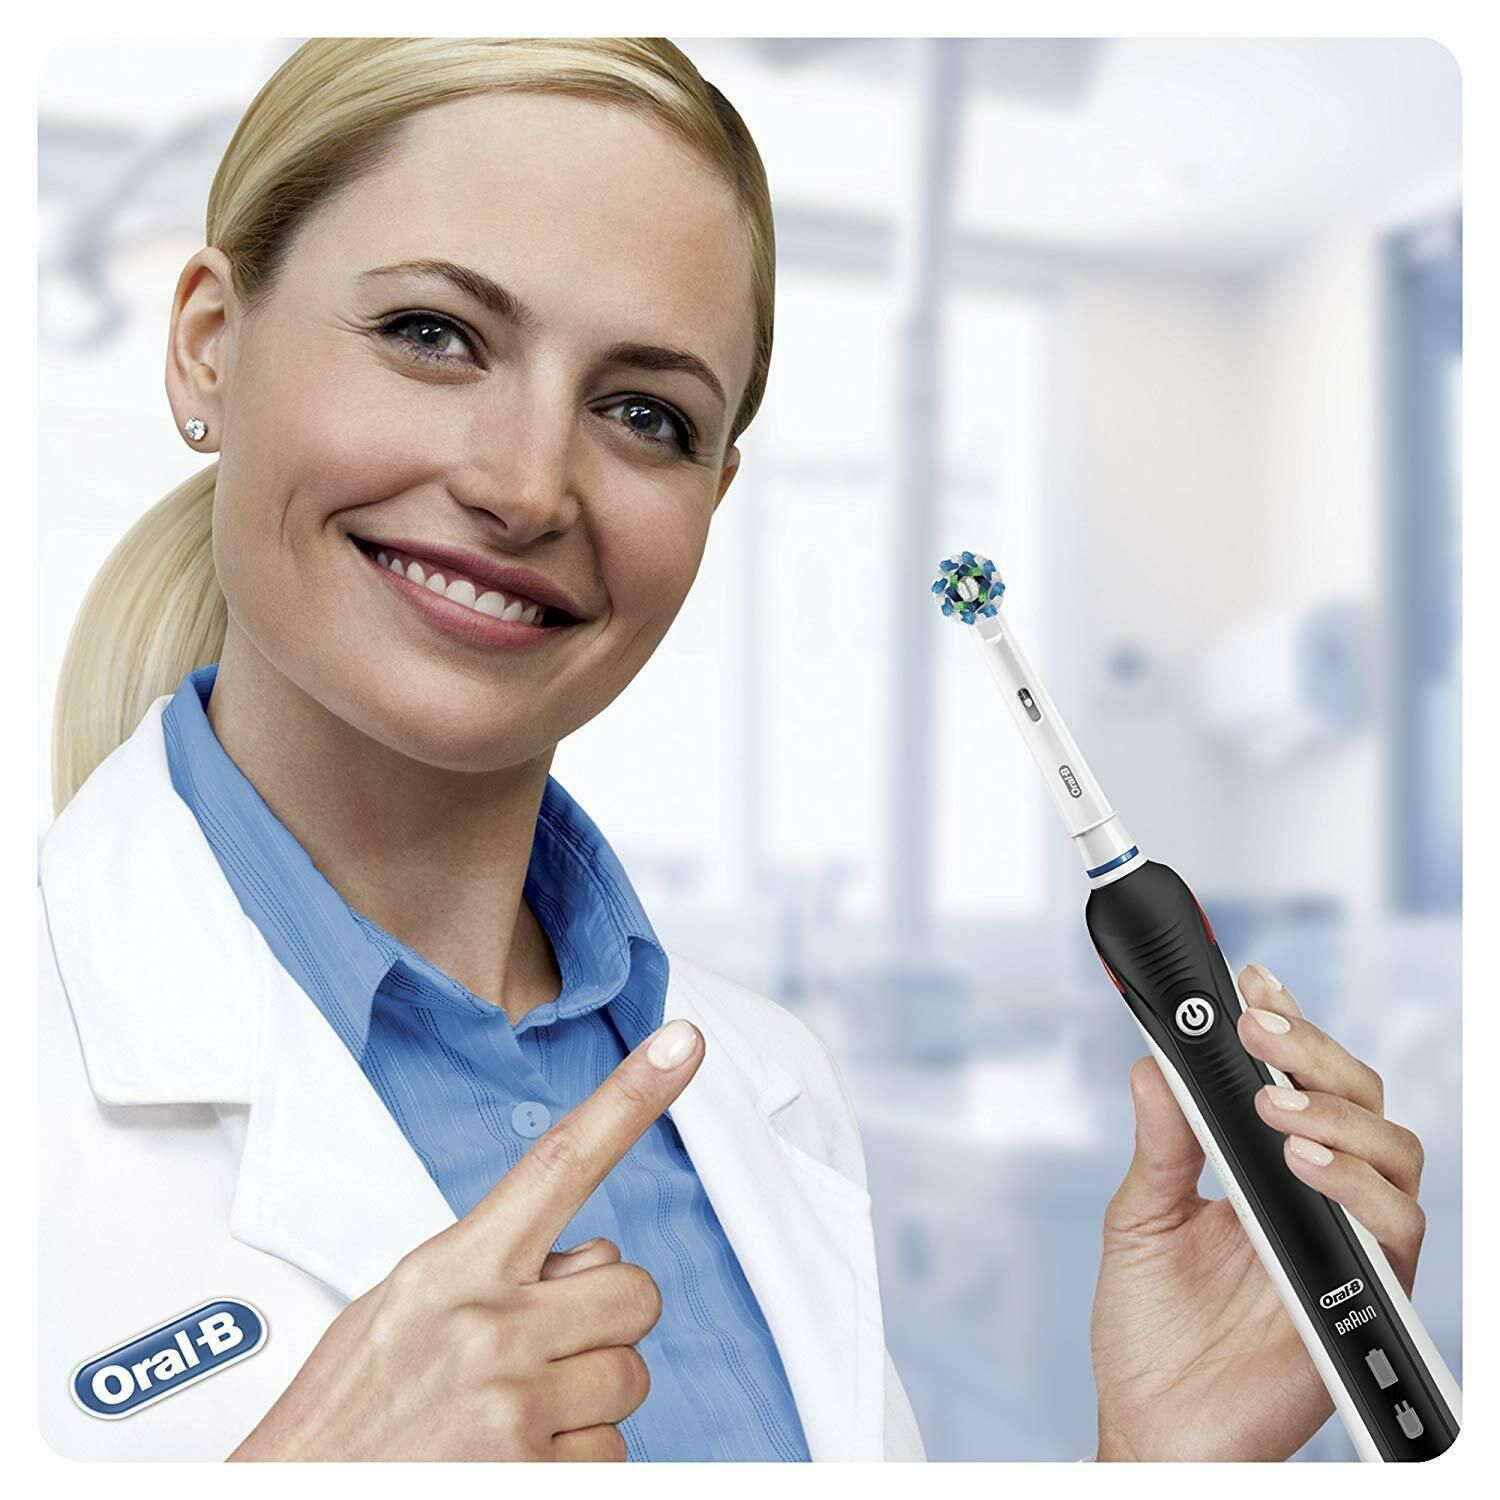 Oral-B Pro 2 2500N CrossAction Electric Rechargeable Toothbrush Black